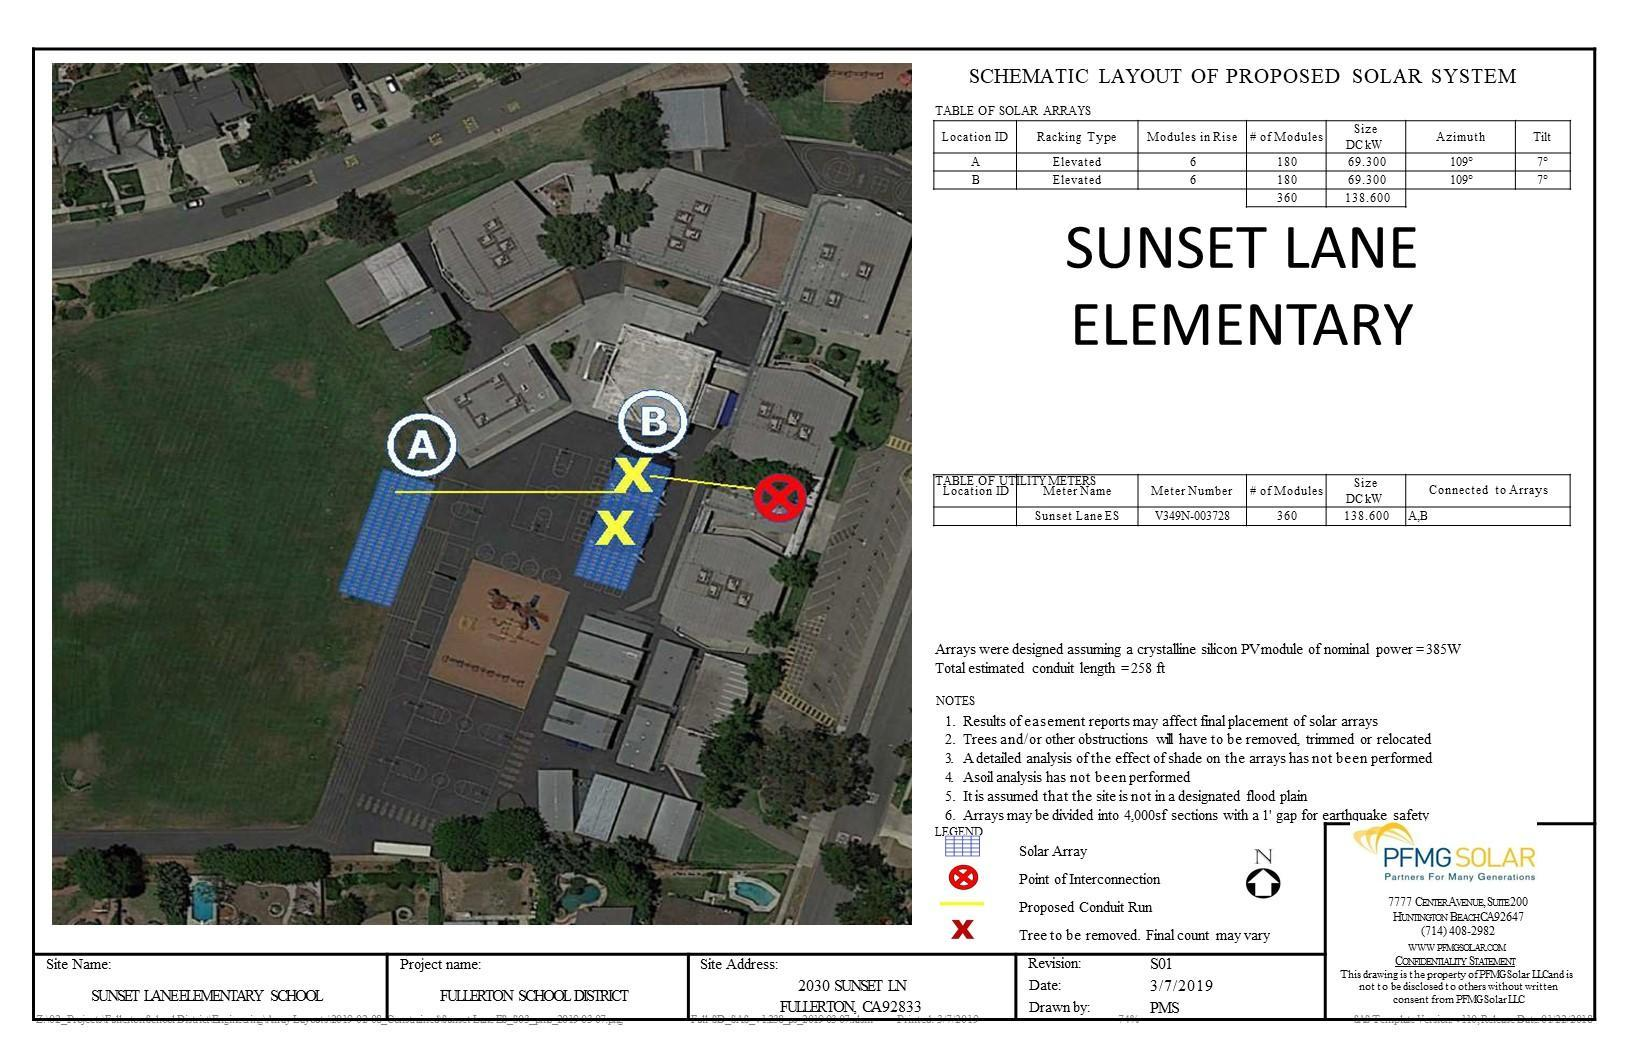 Sunset Lane Elementary Schematic Layout of Proposed Solar System